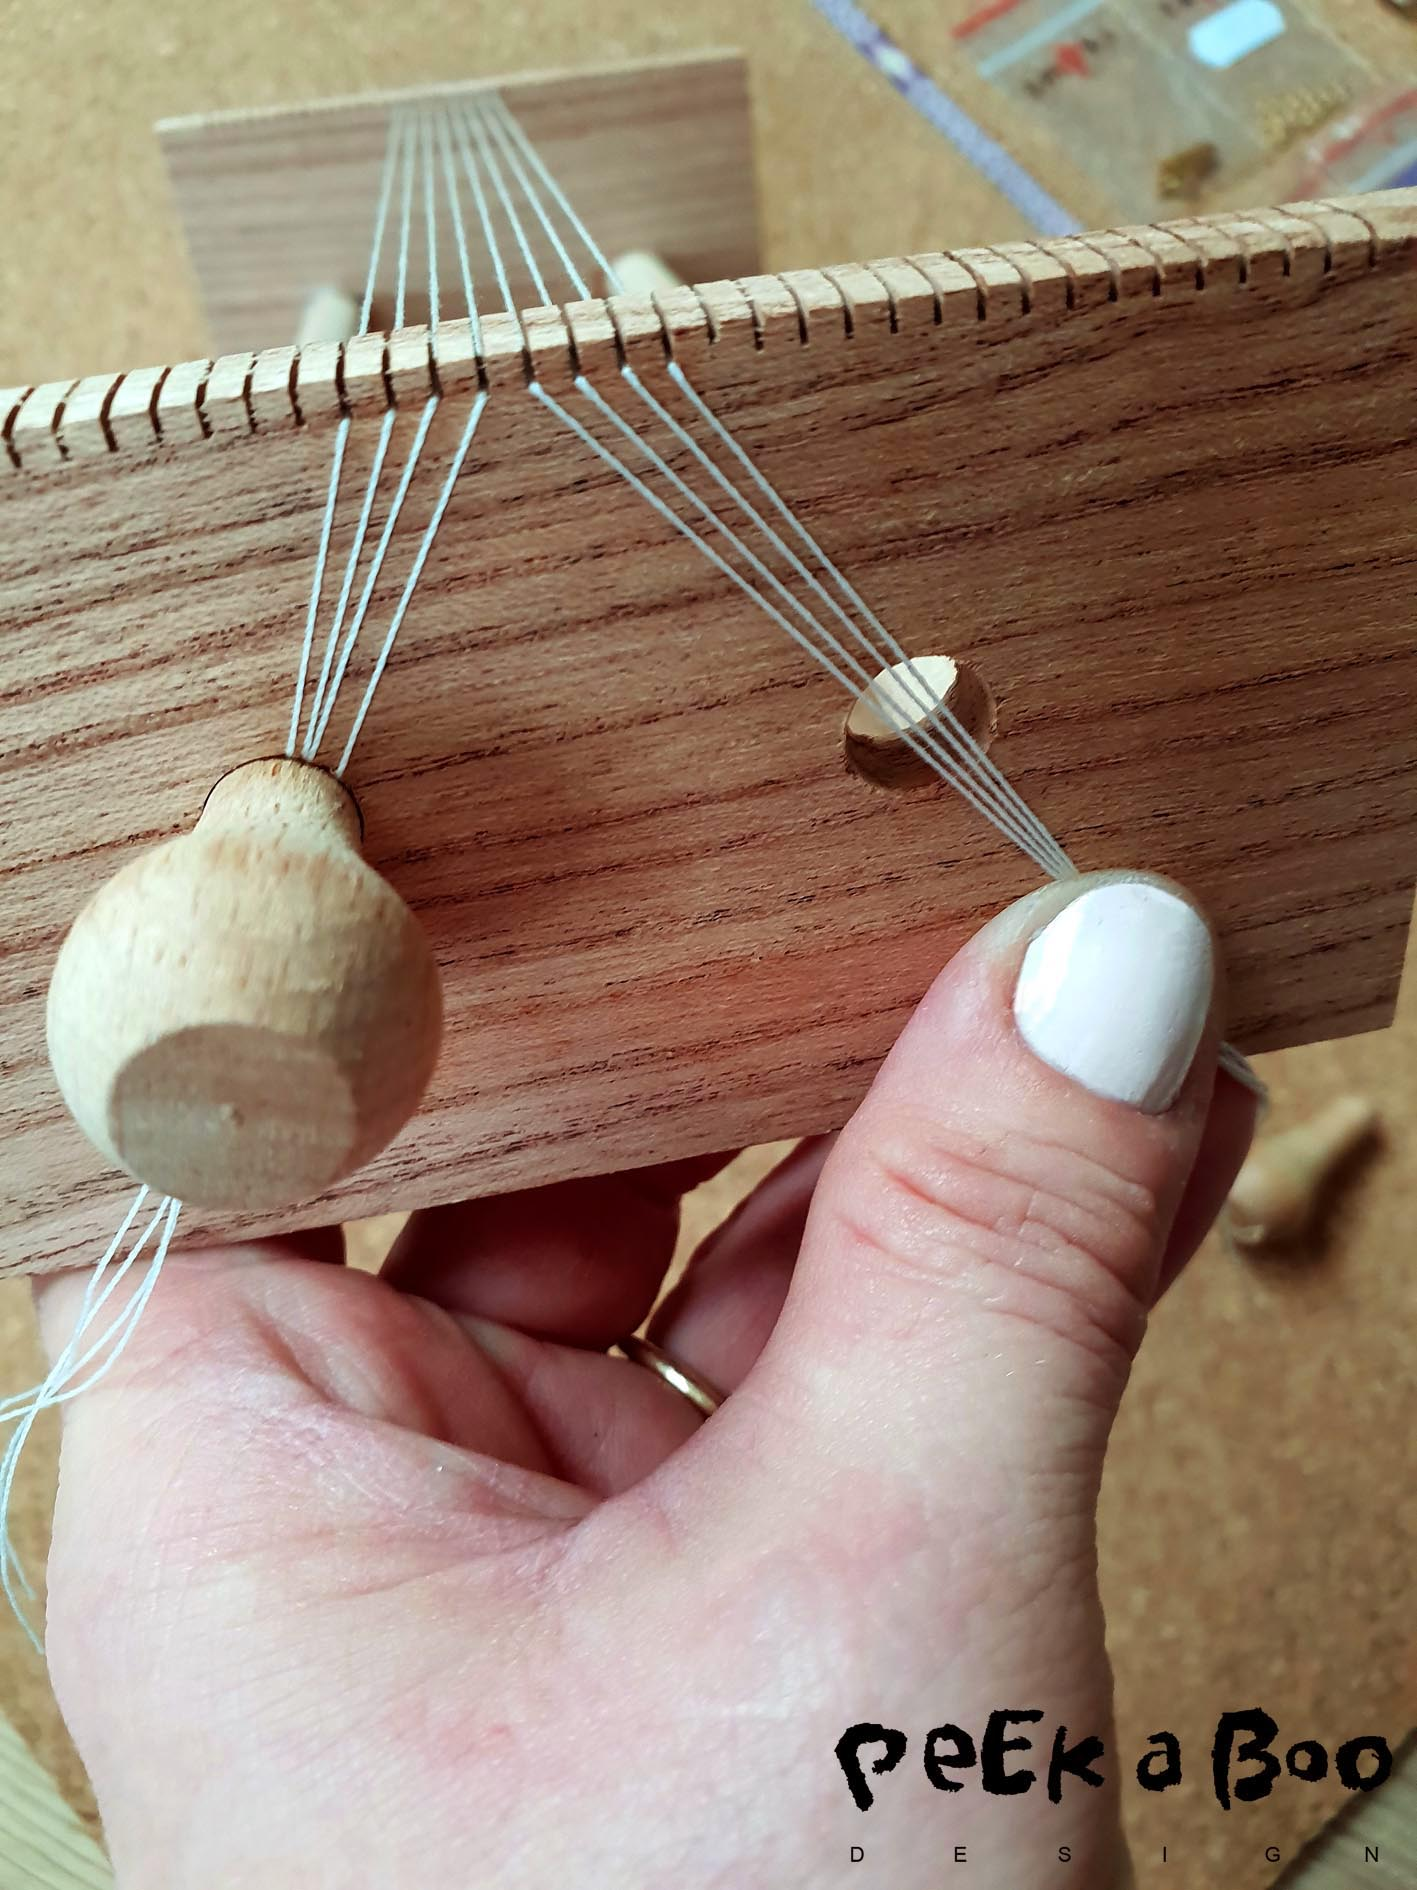 Then put the threads down into the grooves and tighten them into the holes by inserting the stoppers.